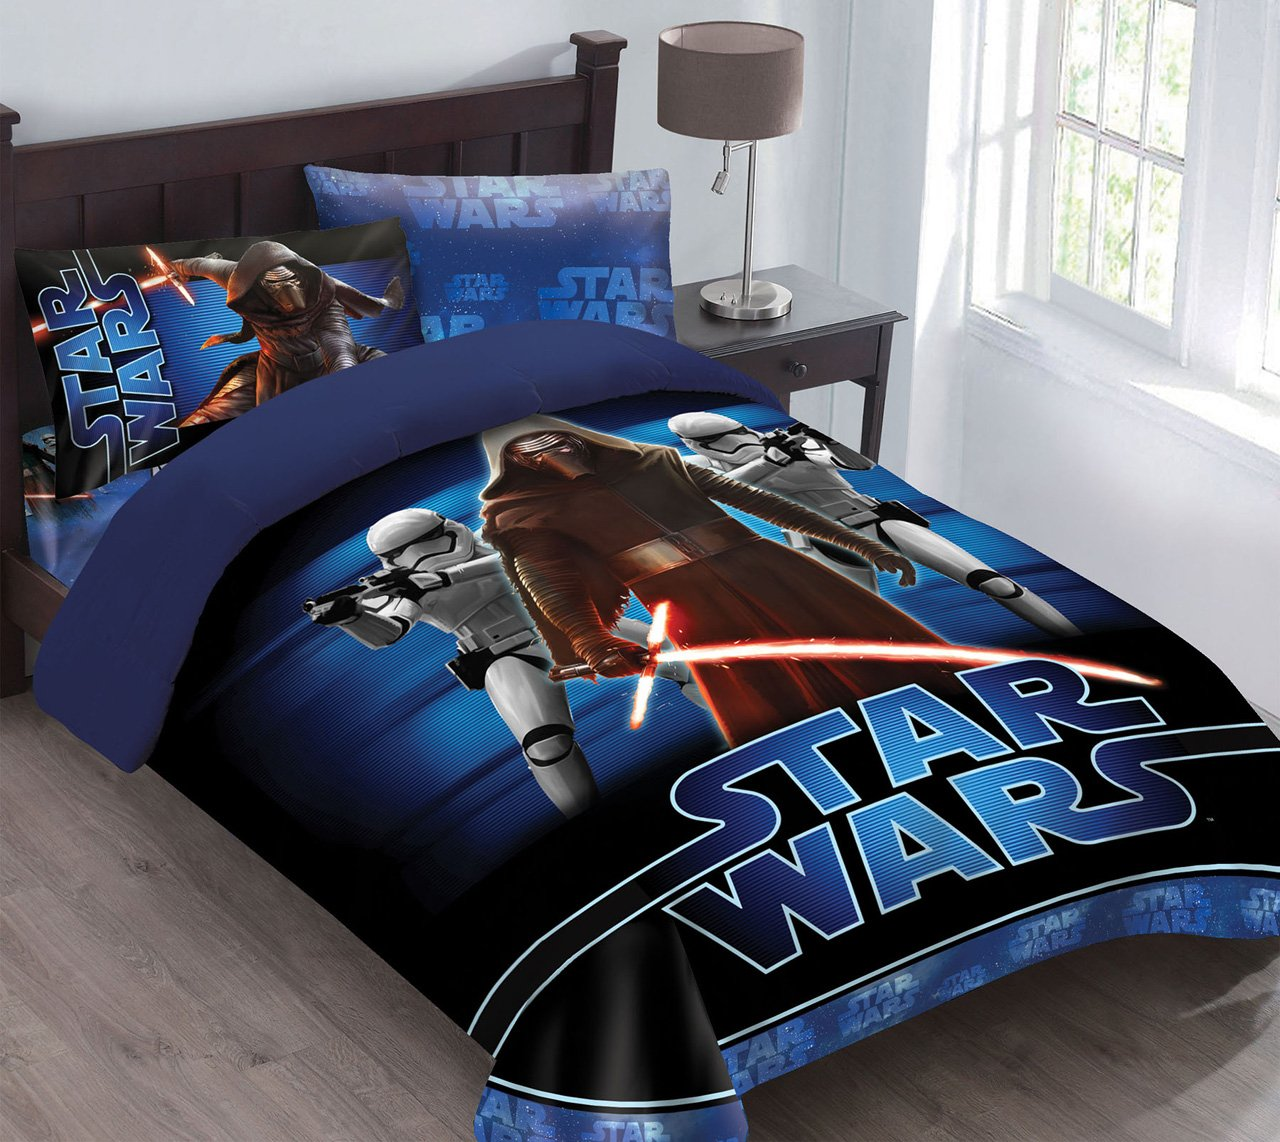 Full Star Wars The Force Awakens Comforter Set with Fitted Sheet